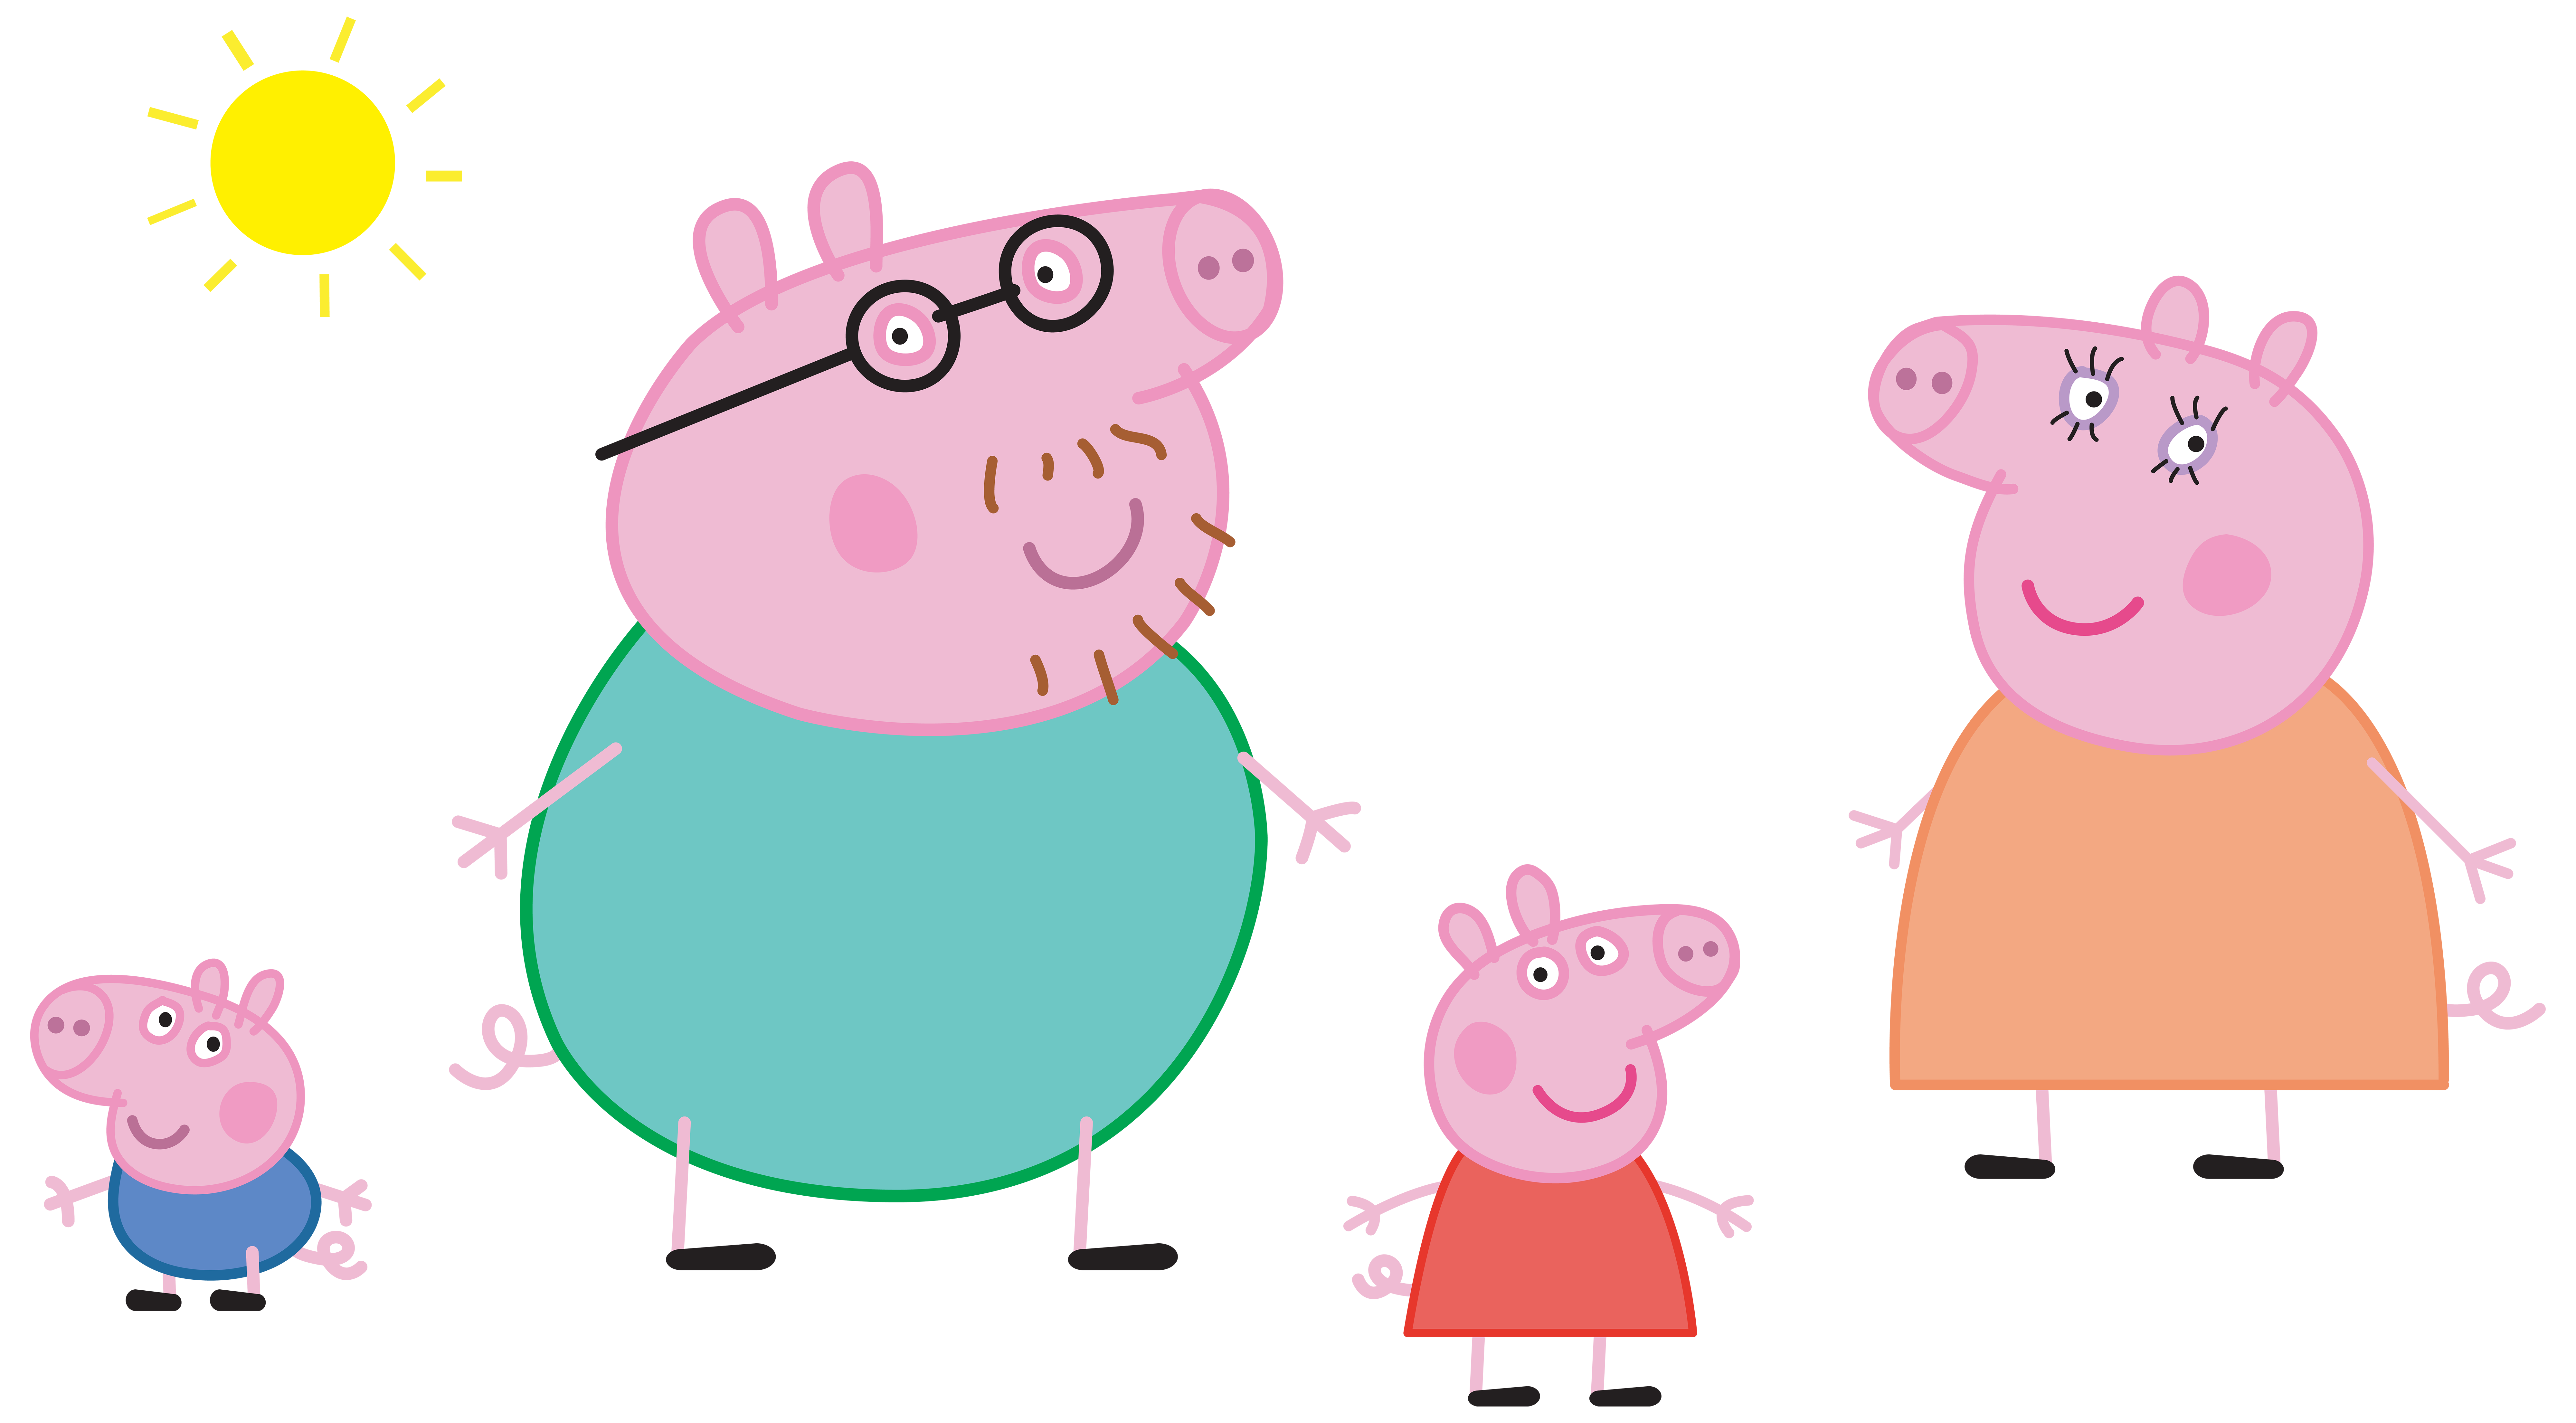 Family clipart png. Peppa pig logo transparent